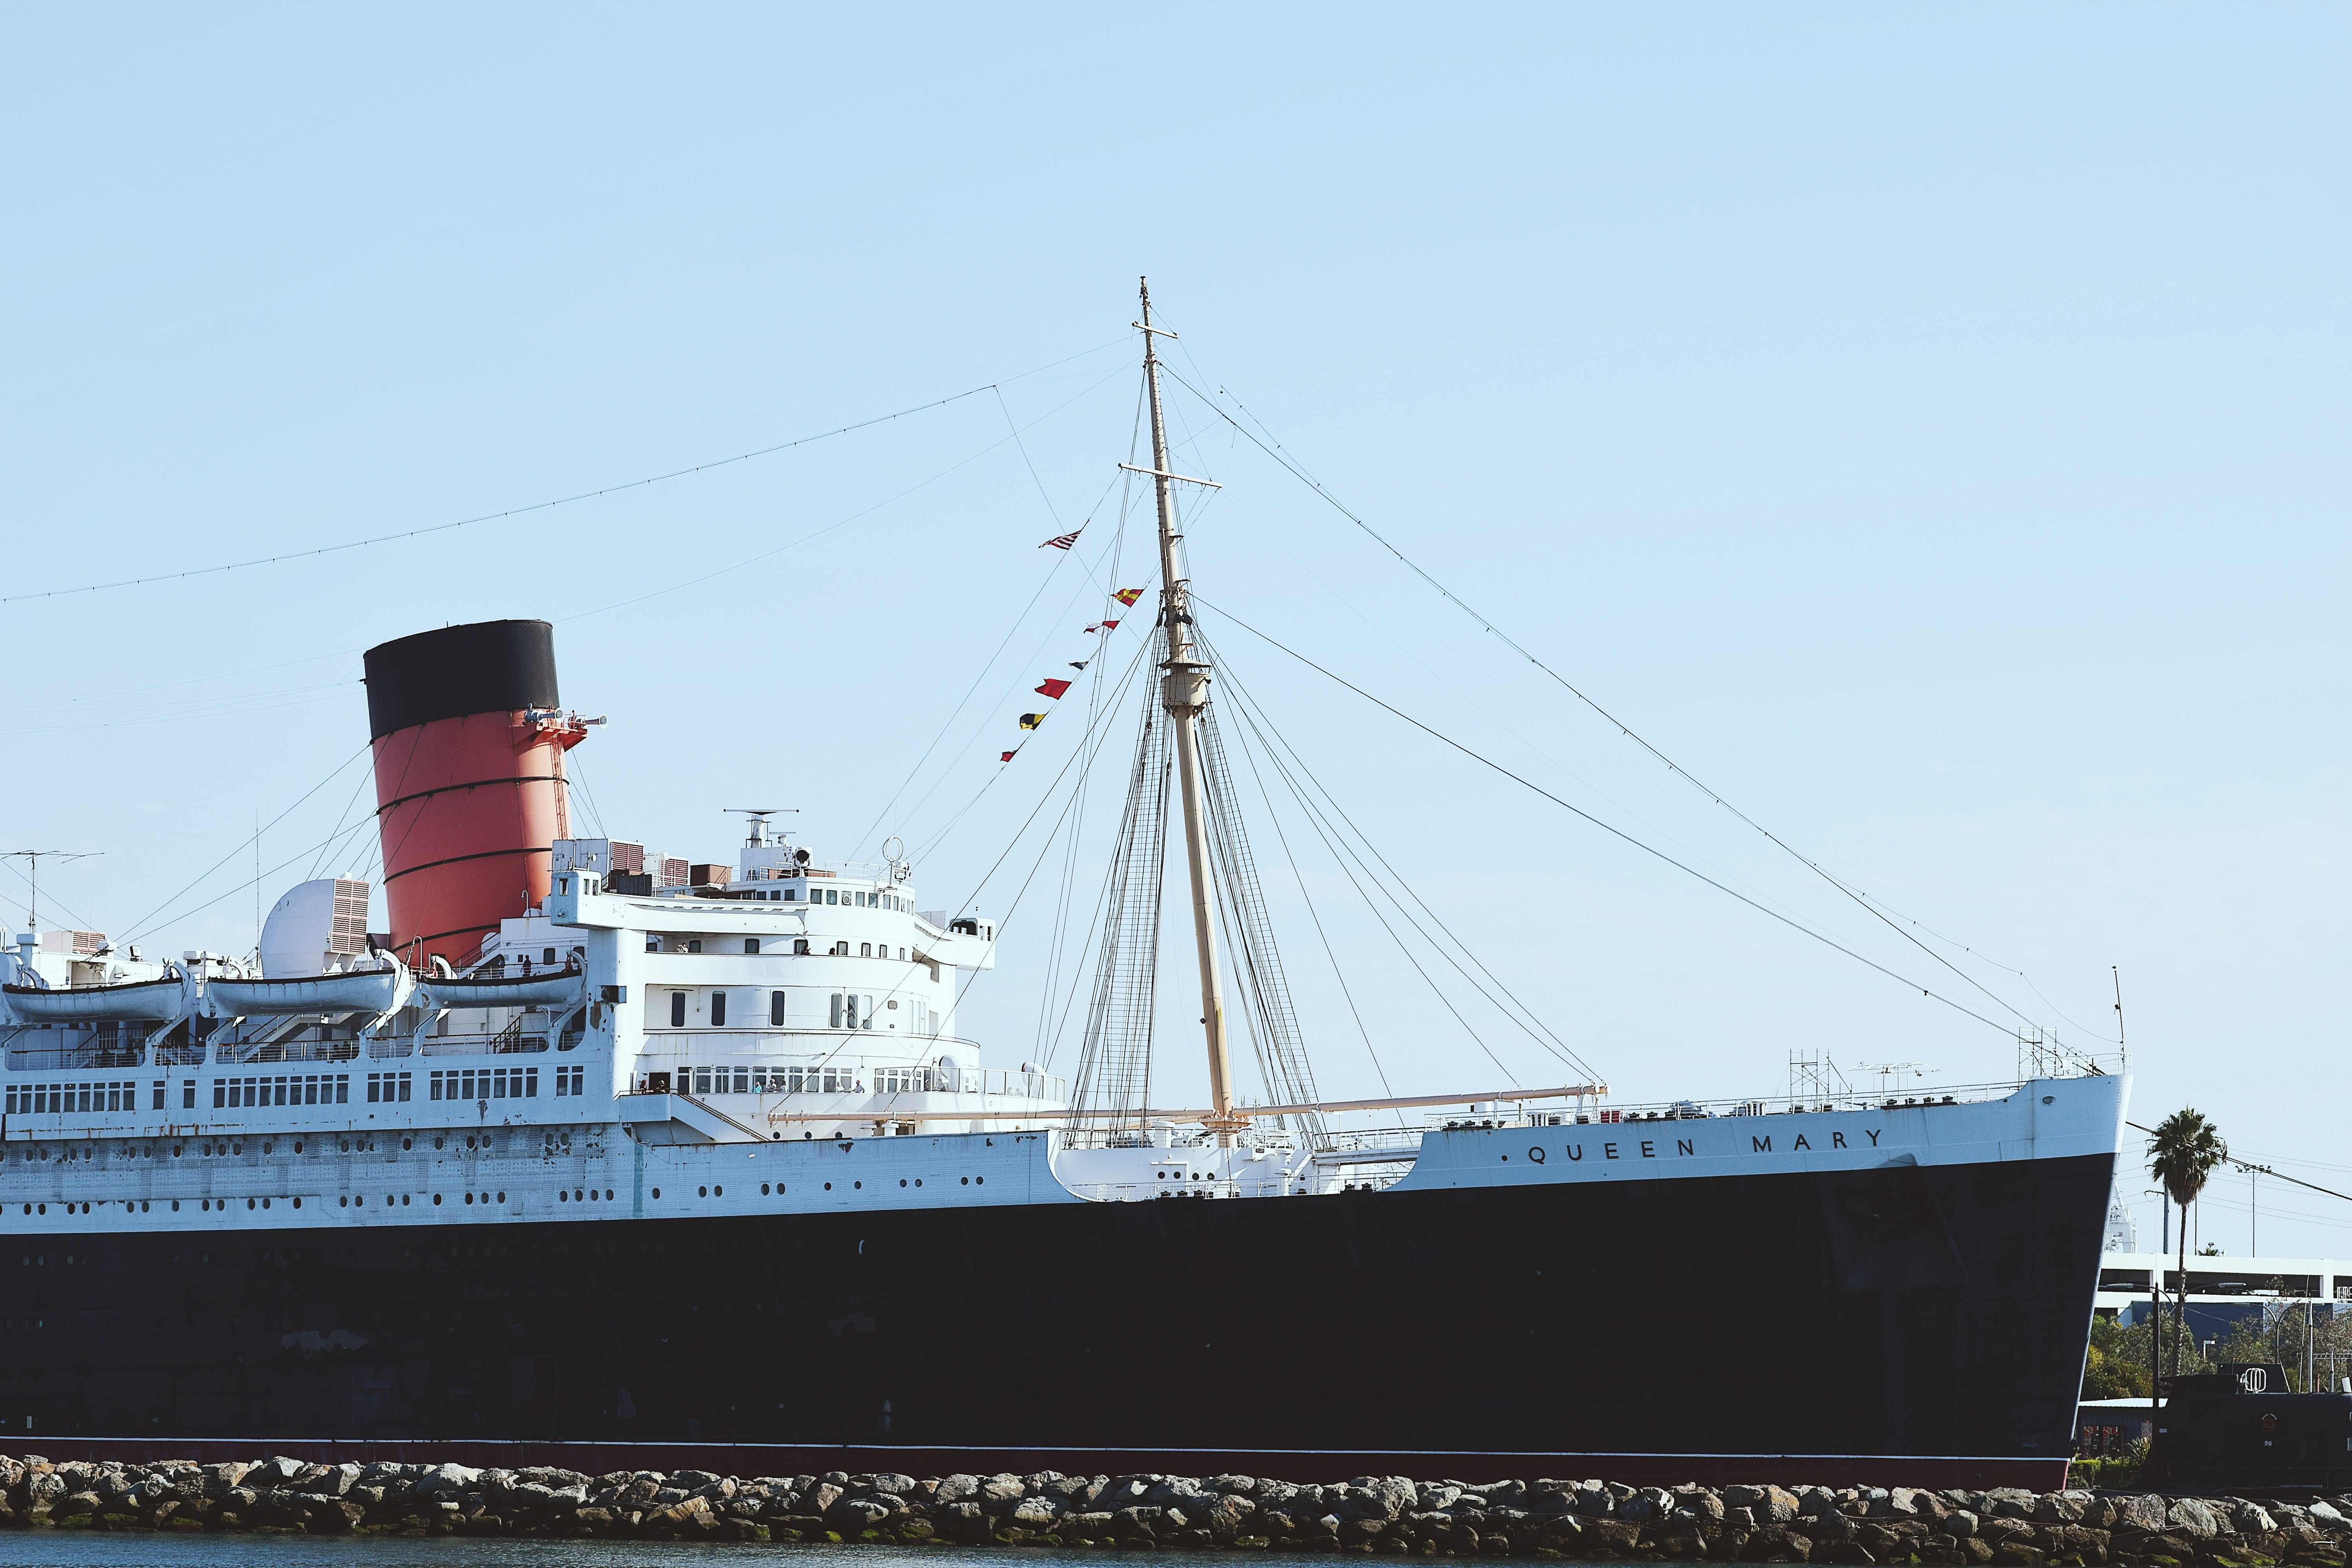 queenmary-multa-media-390347-unsplash